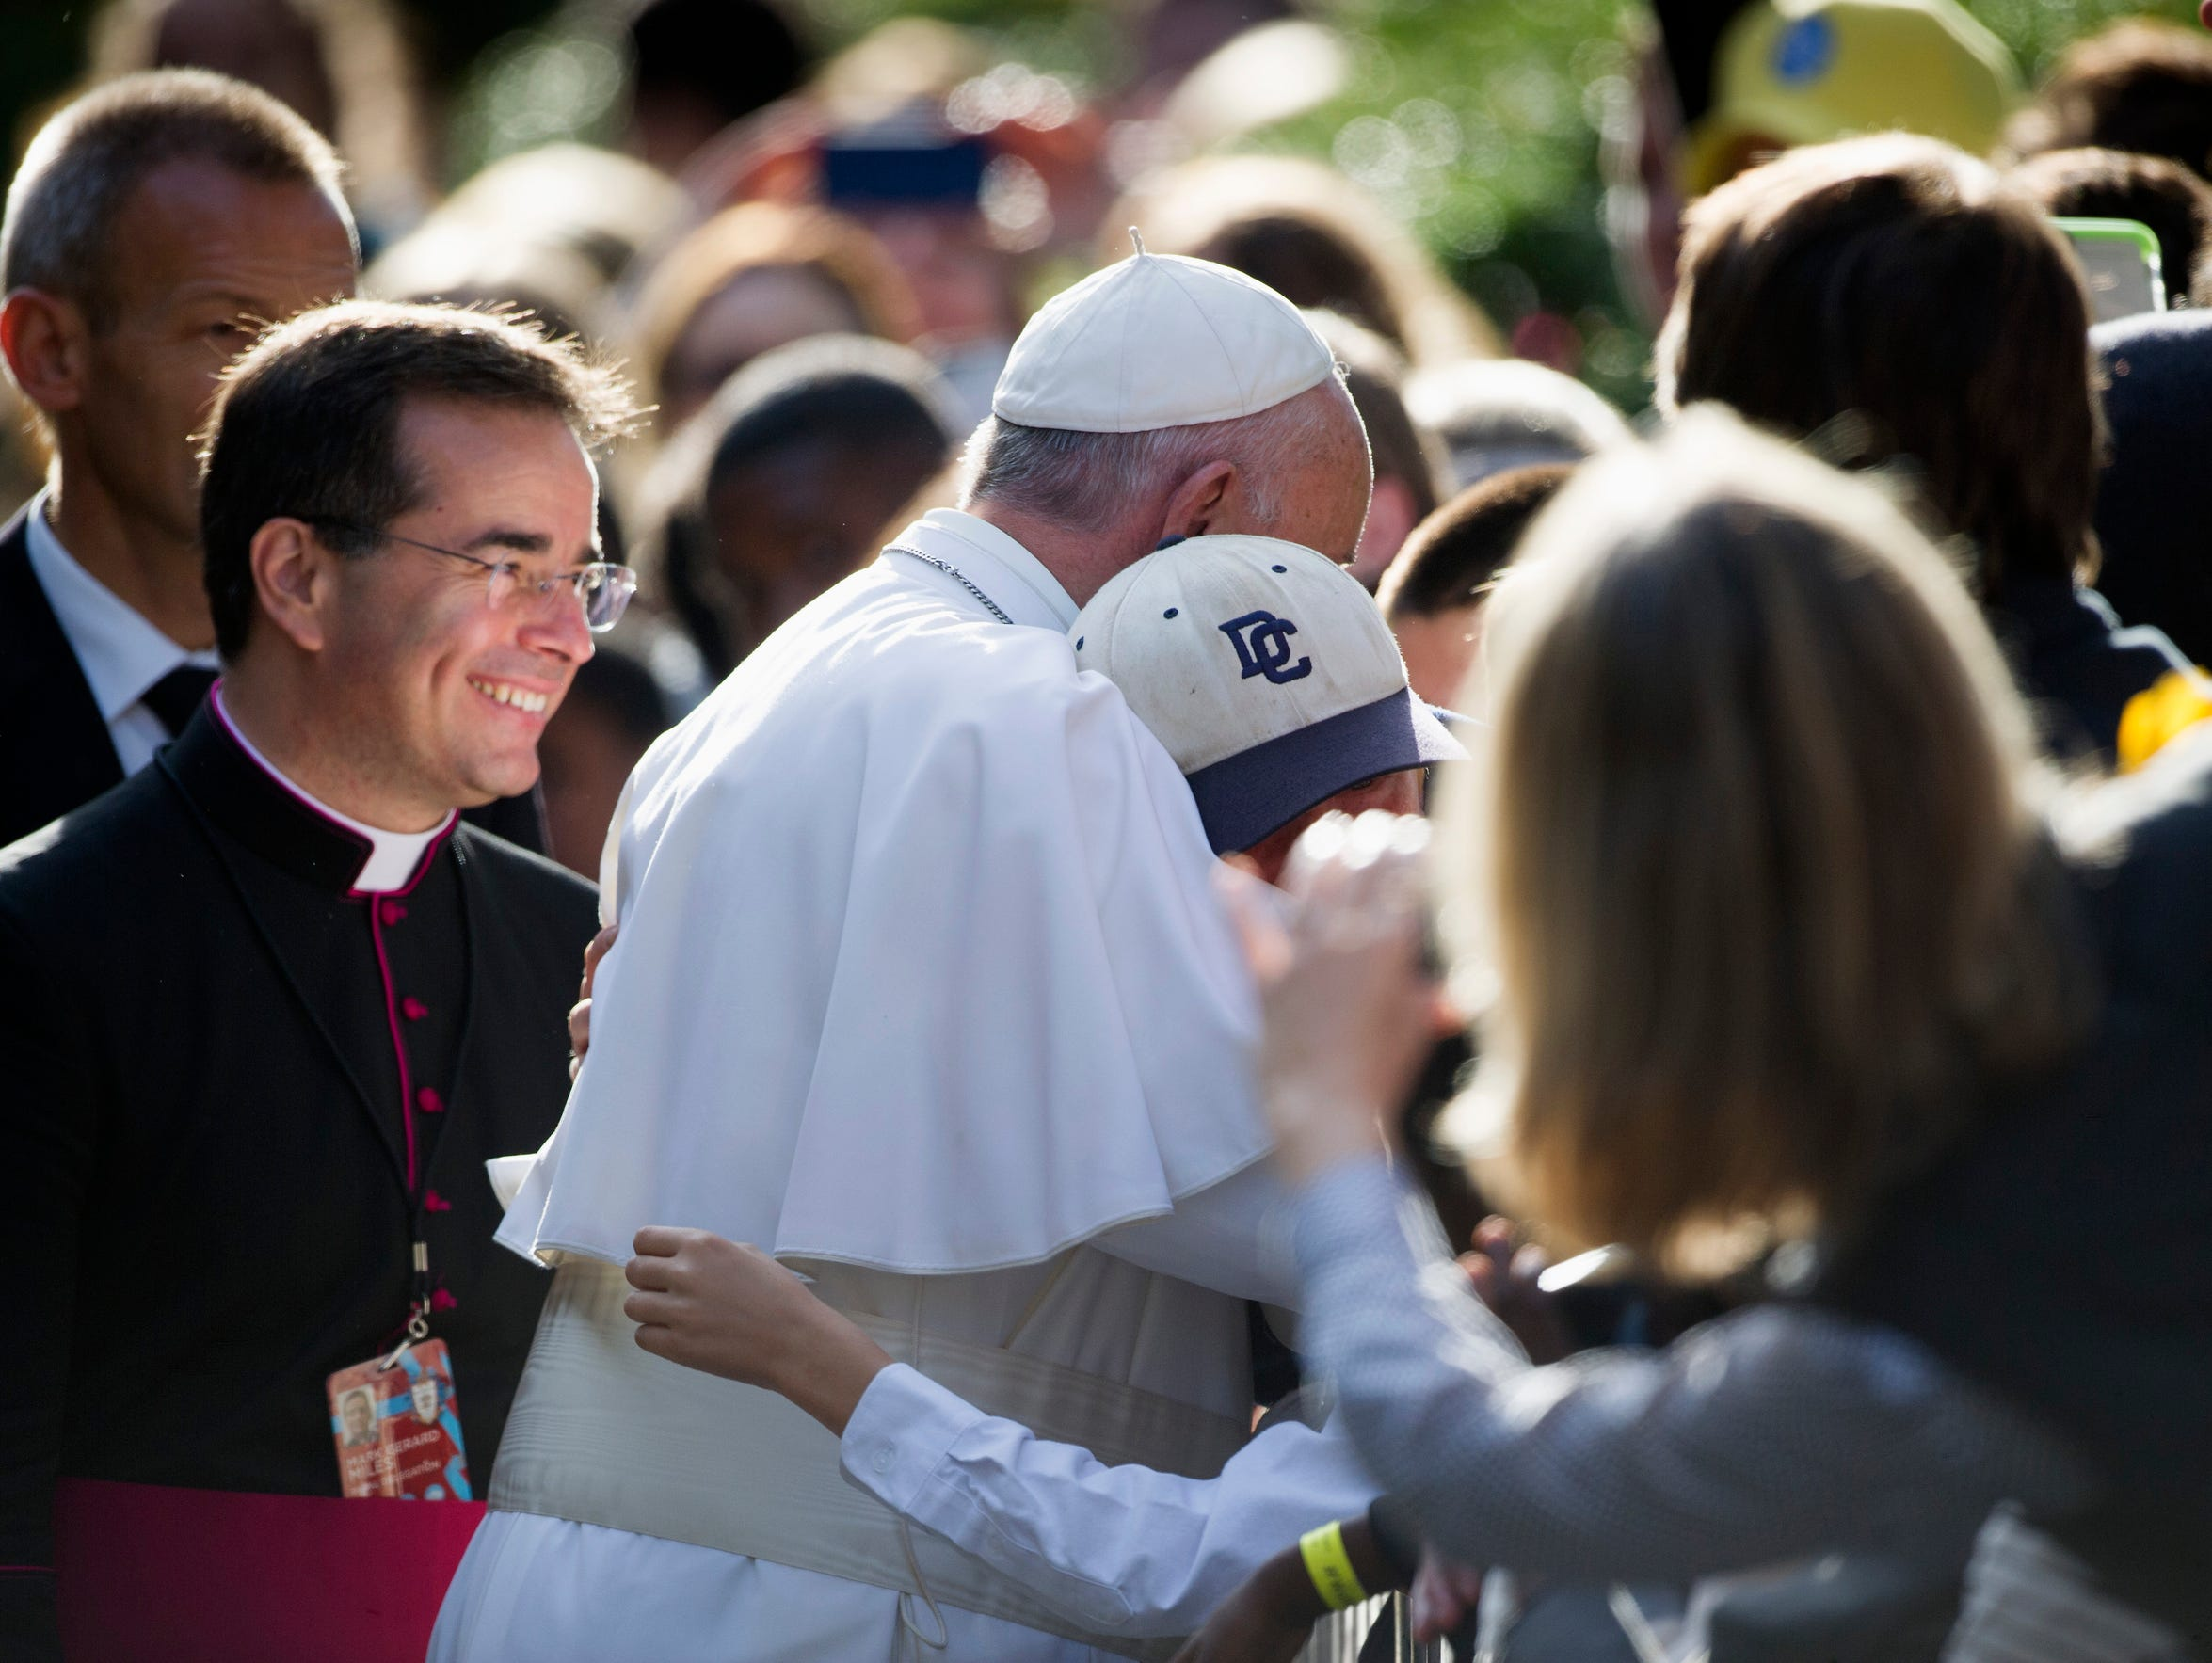 Pope Francis hugs a young boy while greeting school